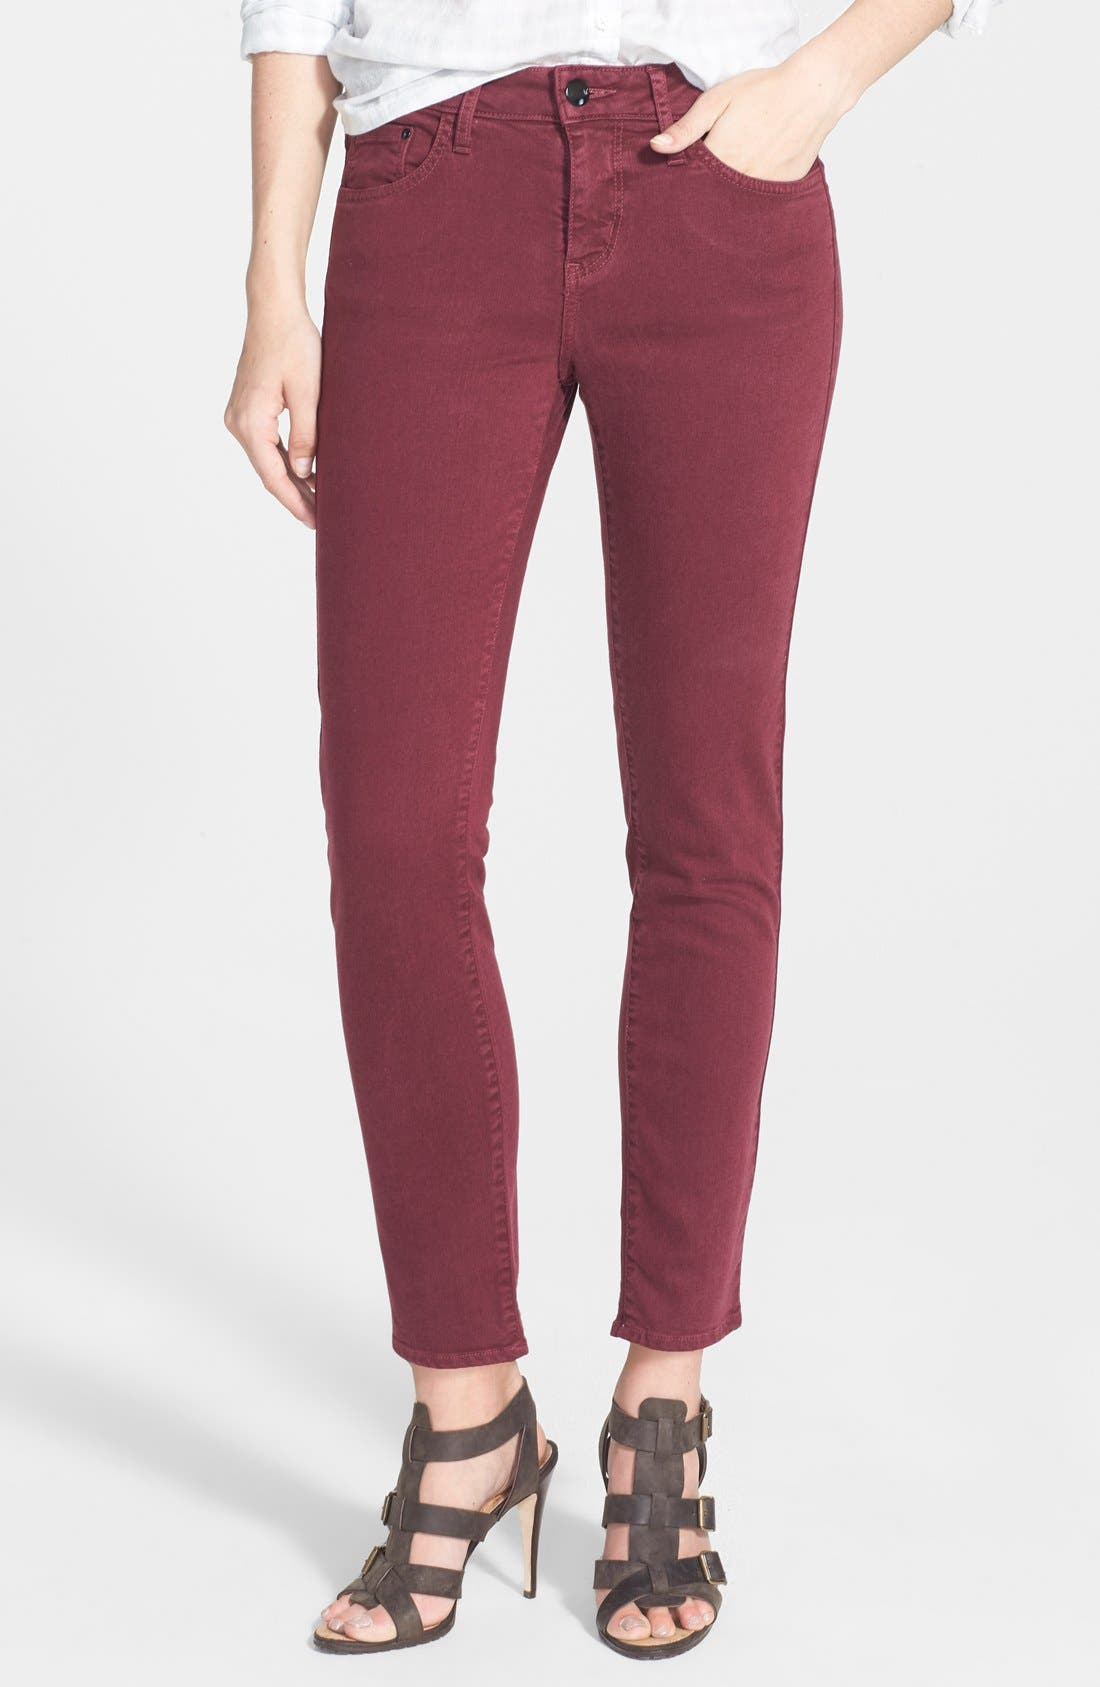 Alternate Image 1 Selected - !iT Collective 'Taylor' Colored Easy Ankle Skinny Jeans